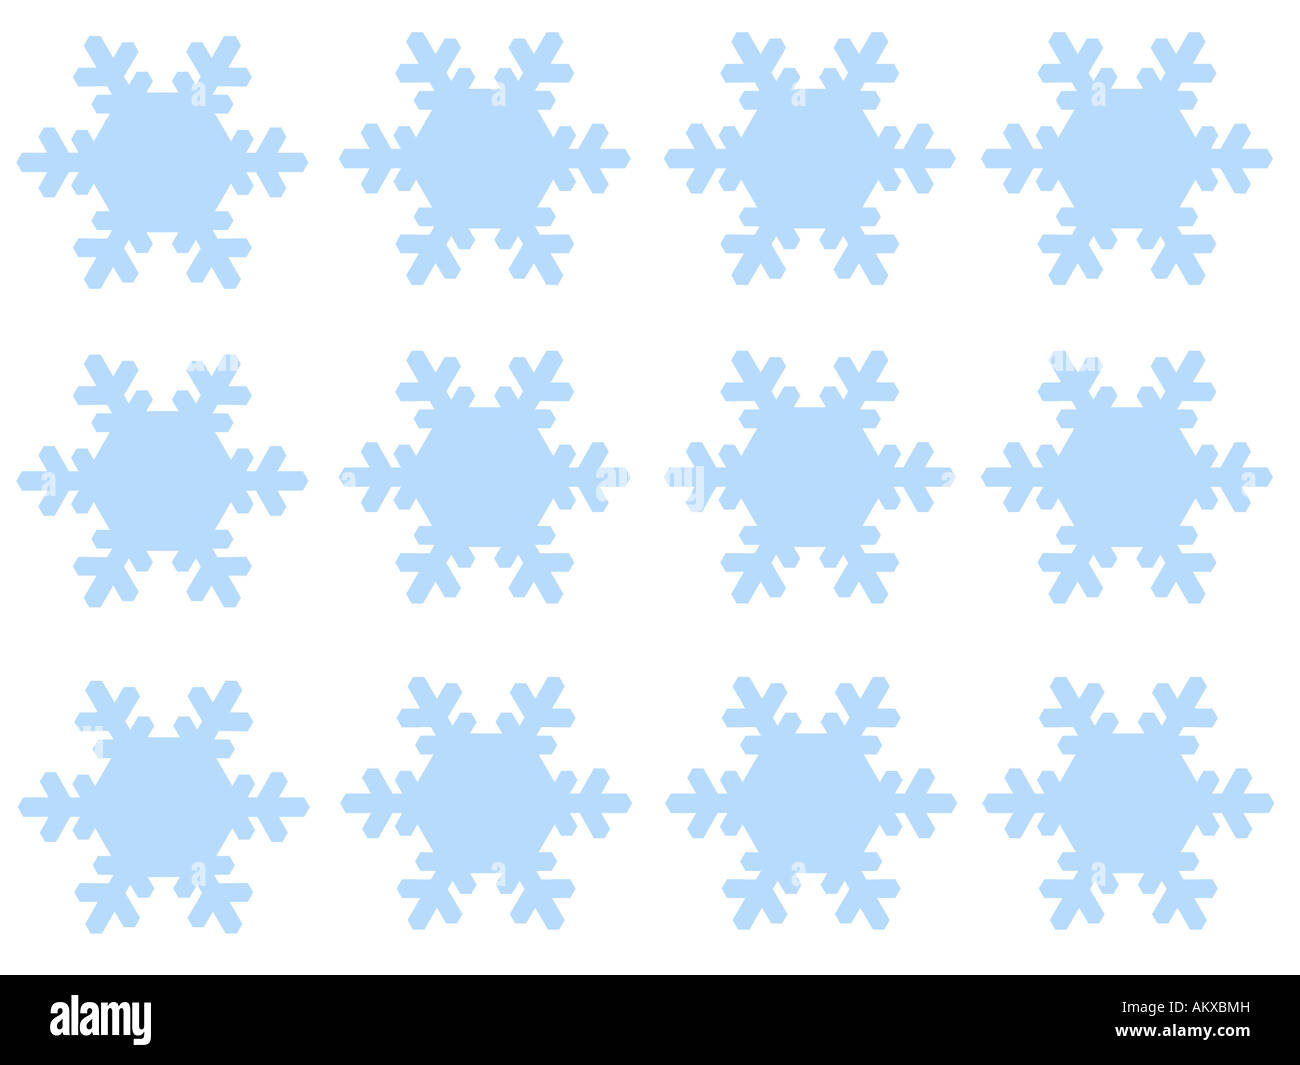 Christmas pattern, graphic, background - Stock Image